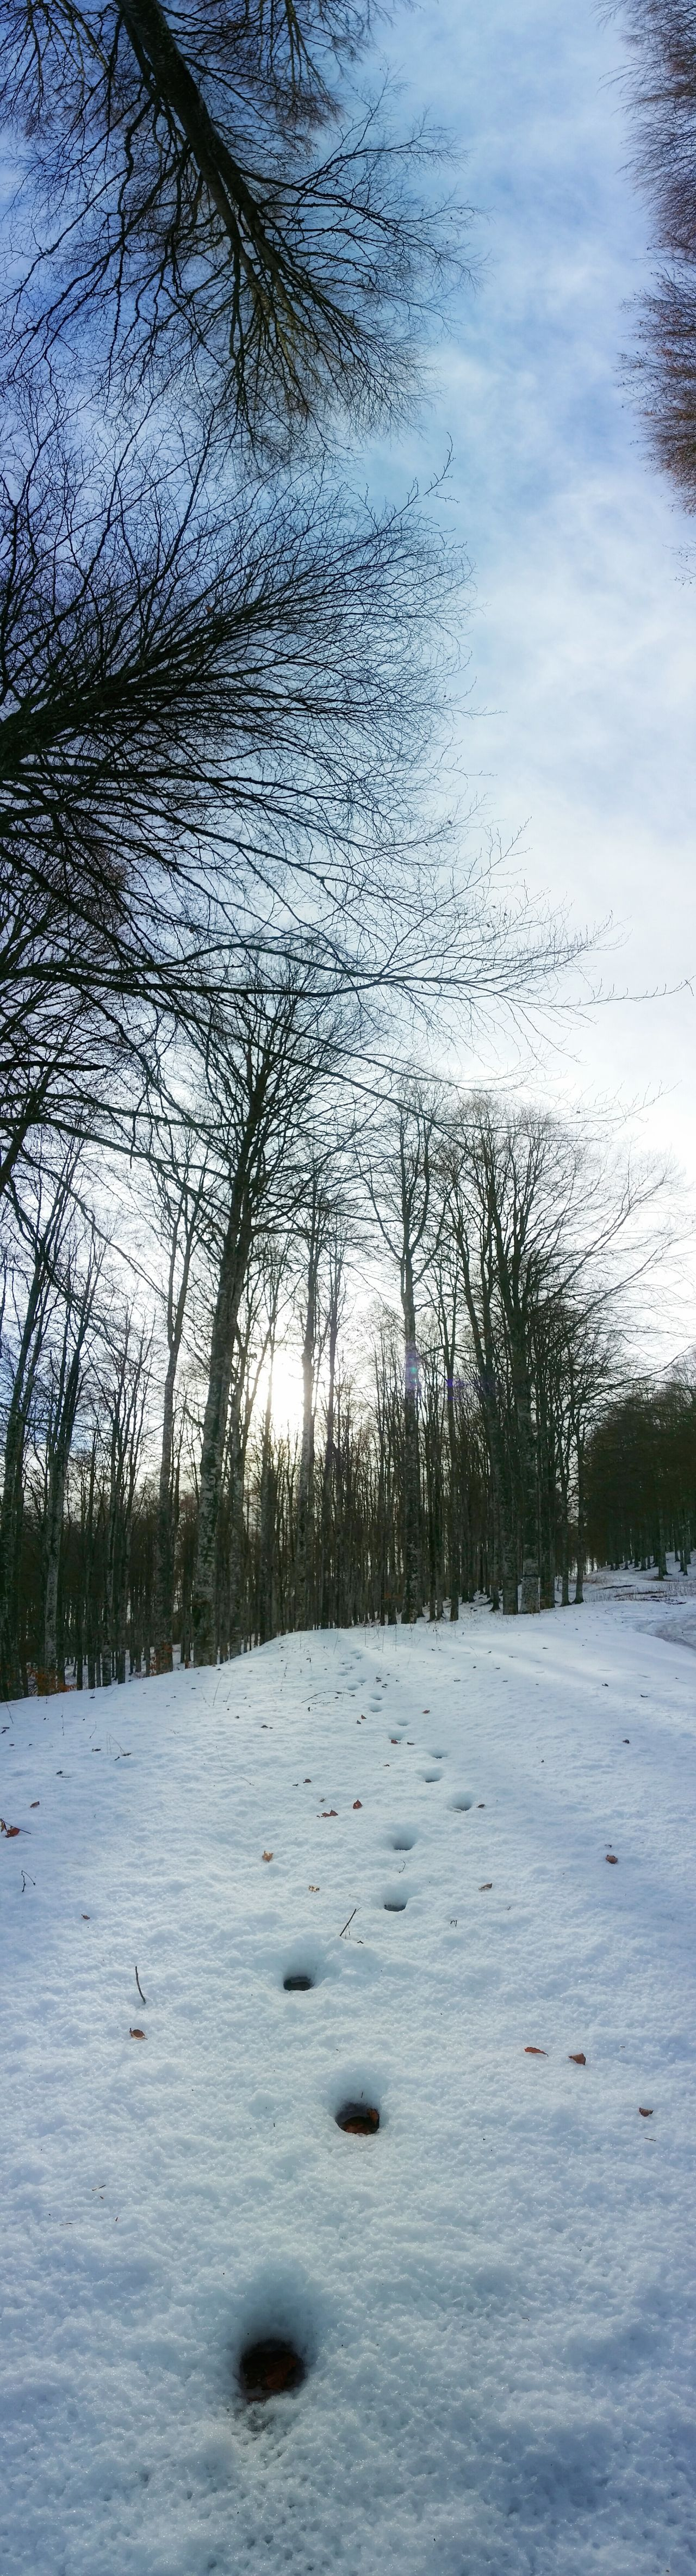 It's Cold Outside Showcase: January Deer Tracks Mobile Photography Art Fineart Panoramic Views Backlight Alpine Hiking Monte Pizzoc Snow And Sun Long Shadows Pattern Pieces